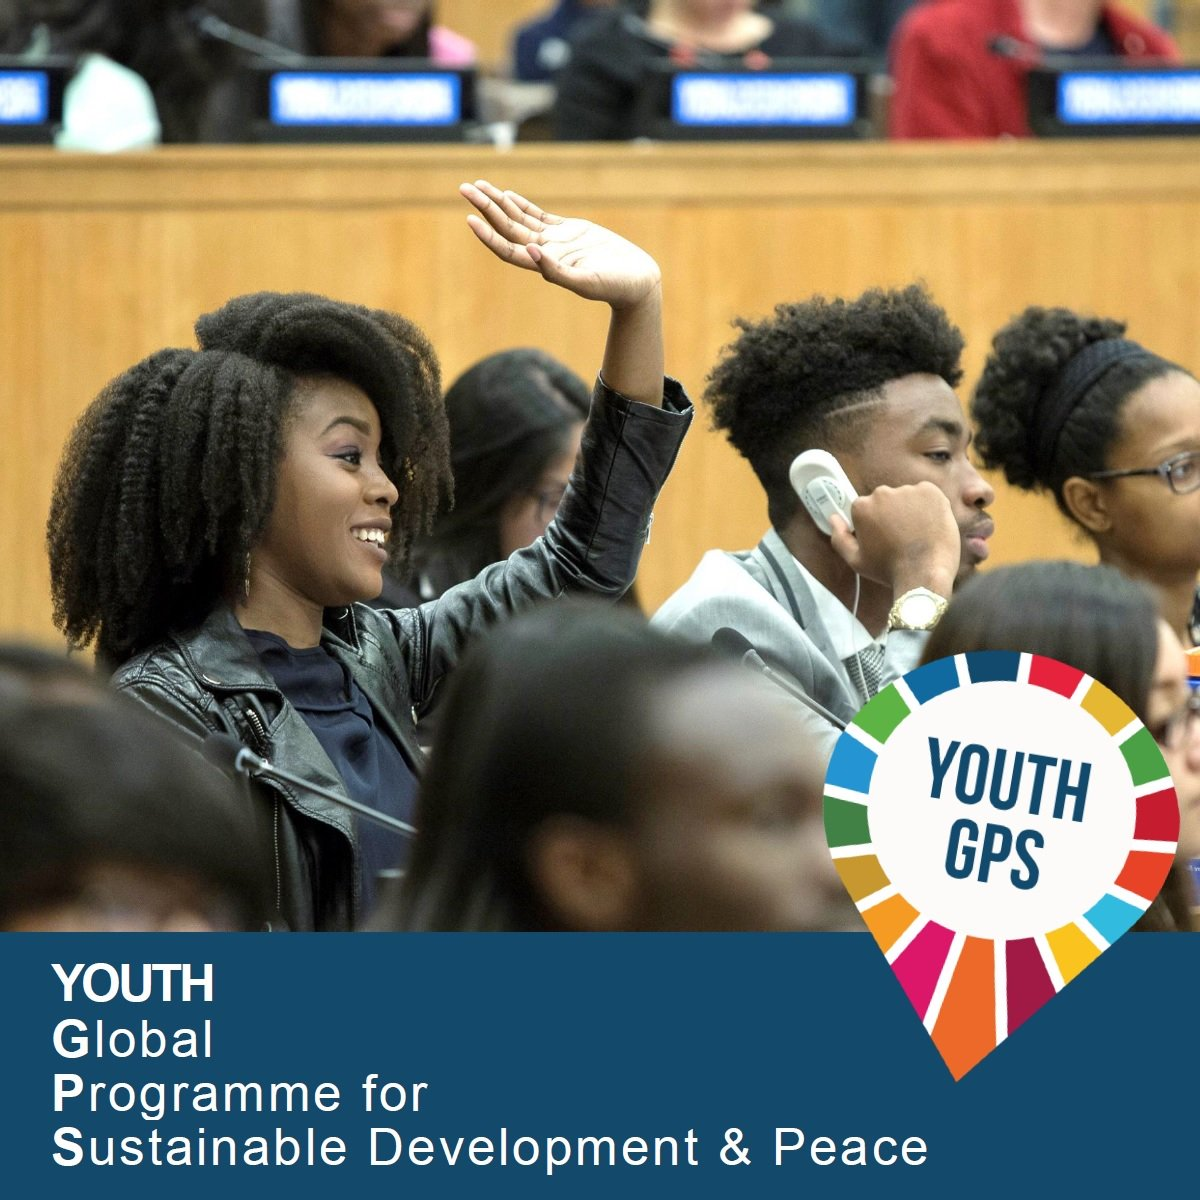 Check out @UNDP's brand �� #Youth Global Programme for #SustDev & Peace! https://t.co/Ra5cZGAlY3 #YouthGPS #UNGA https://t.co/Fc80QD5n8p